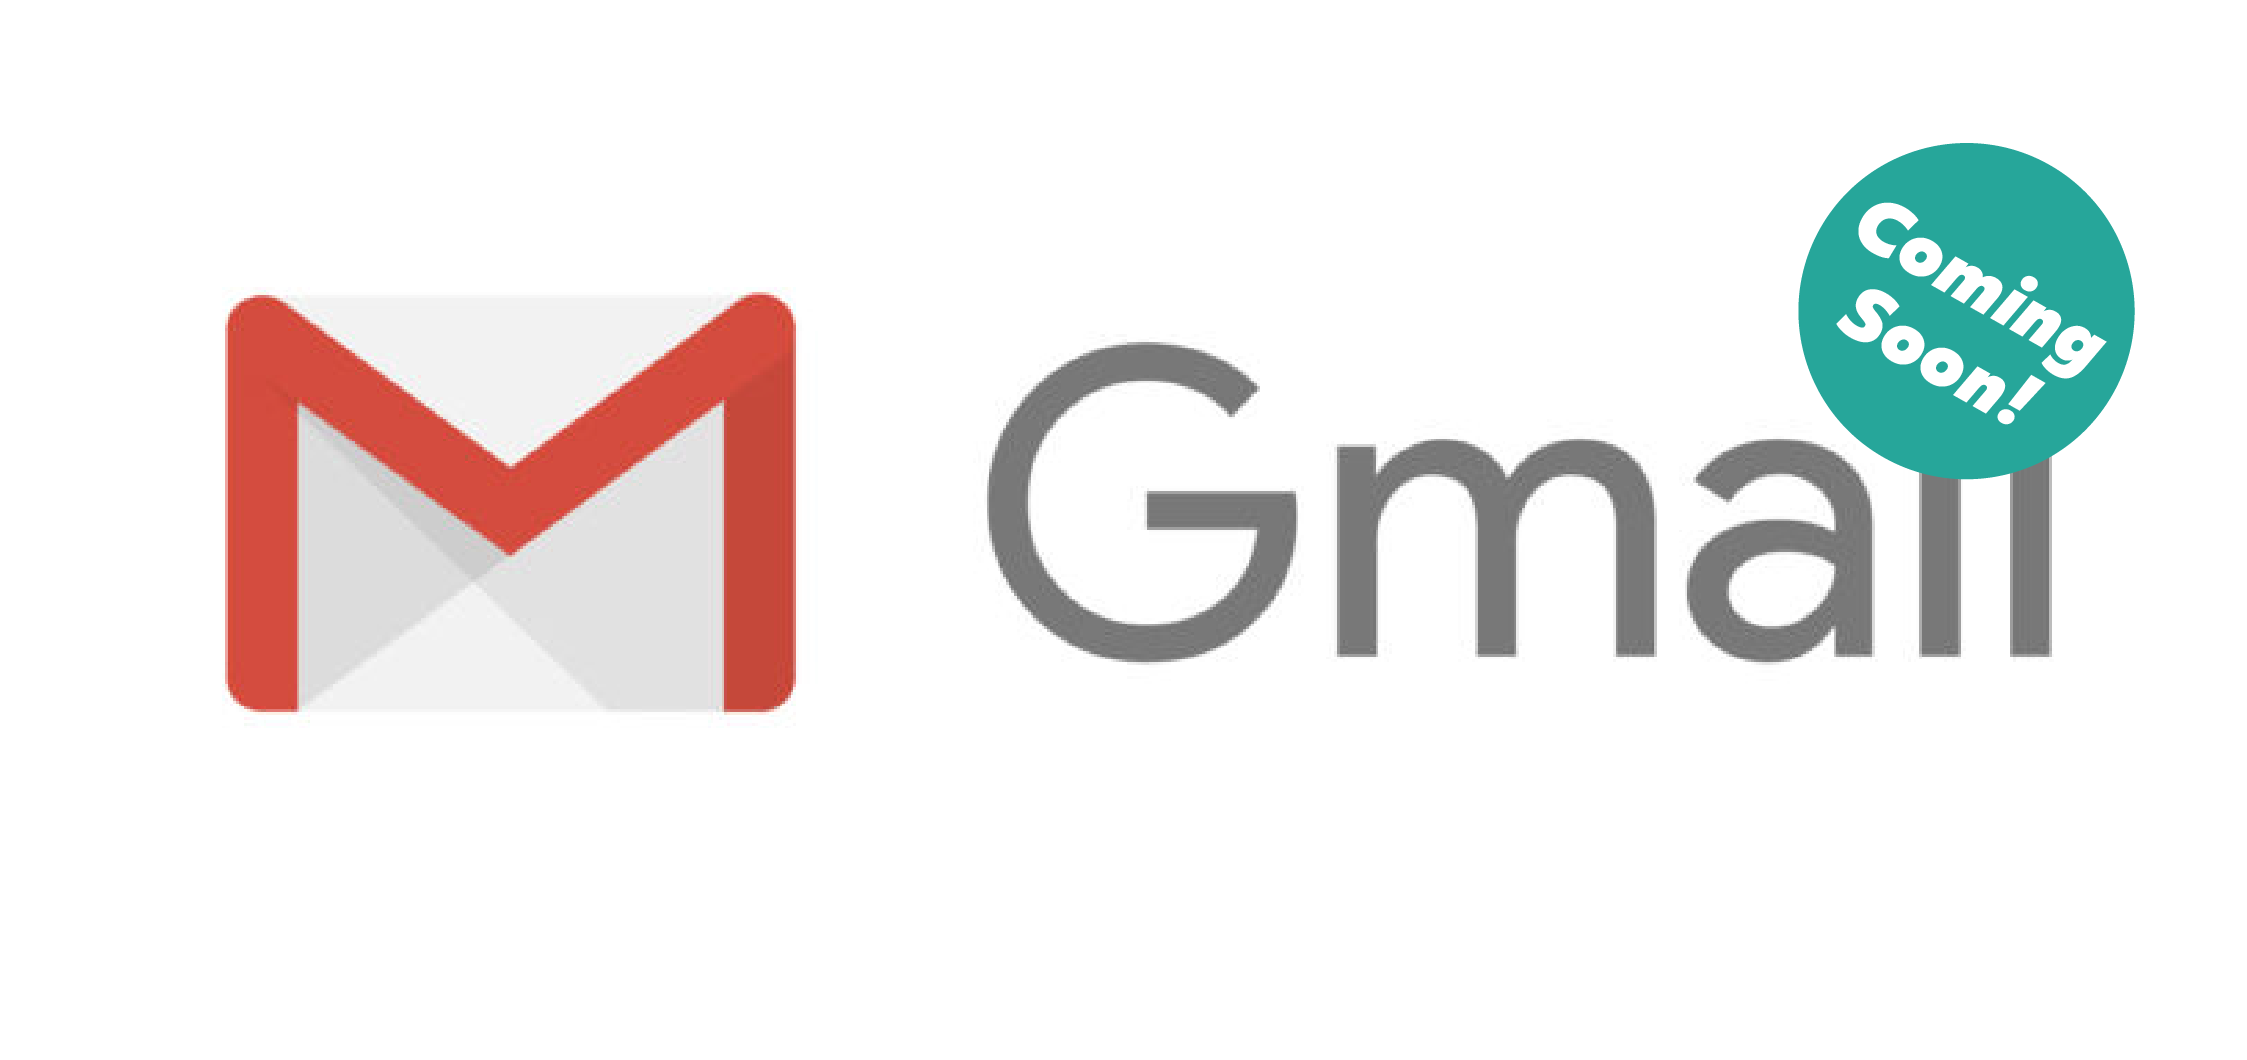 Gmail: is a free email service by Google - easy to use, save your time, and keep your messages safe.